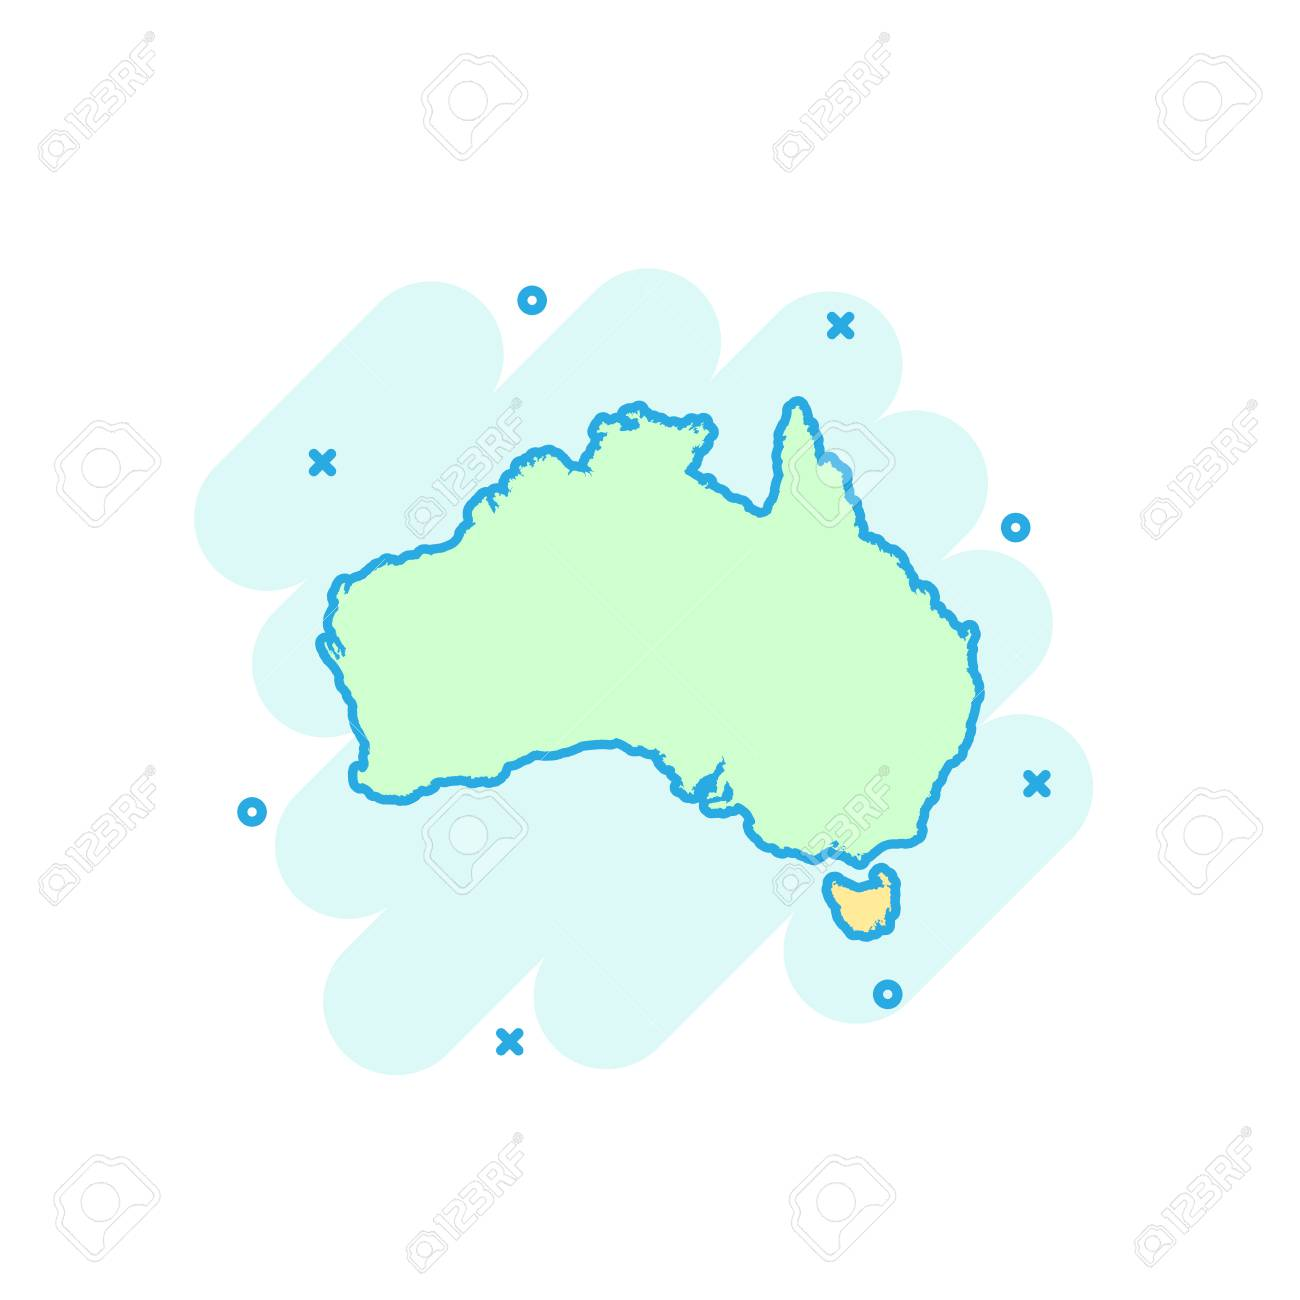 Australia Map Clipart.Cartoon Colored Australia Map Icon In Comic Style Australia